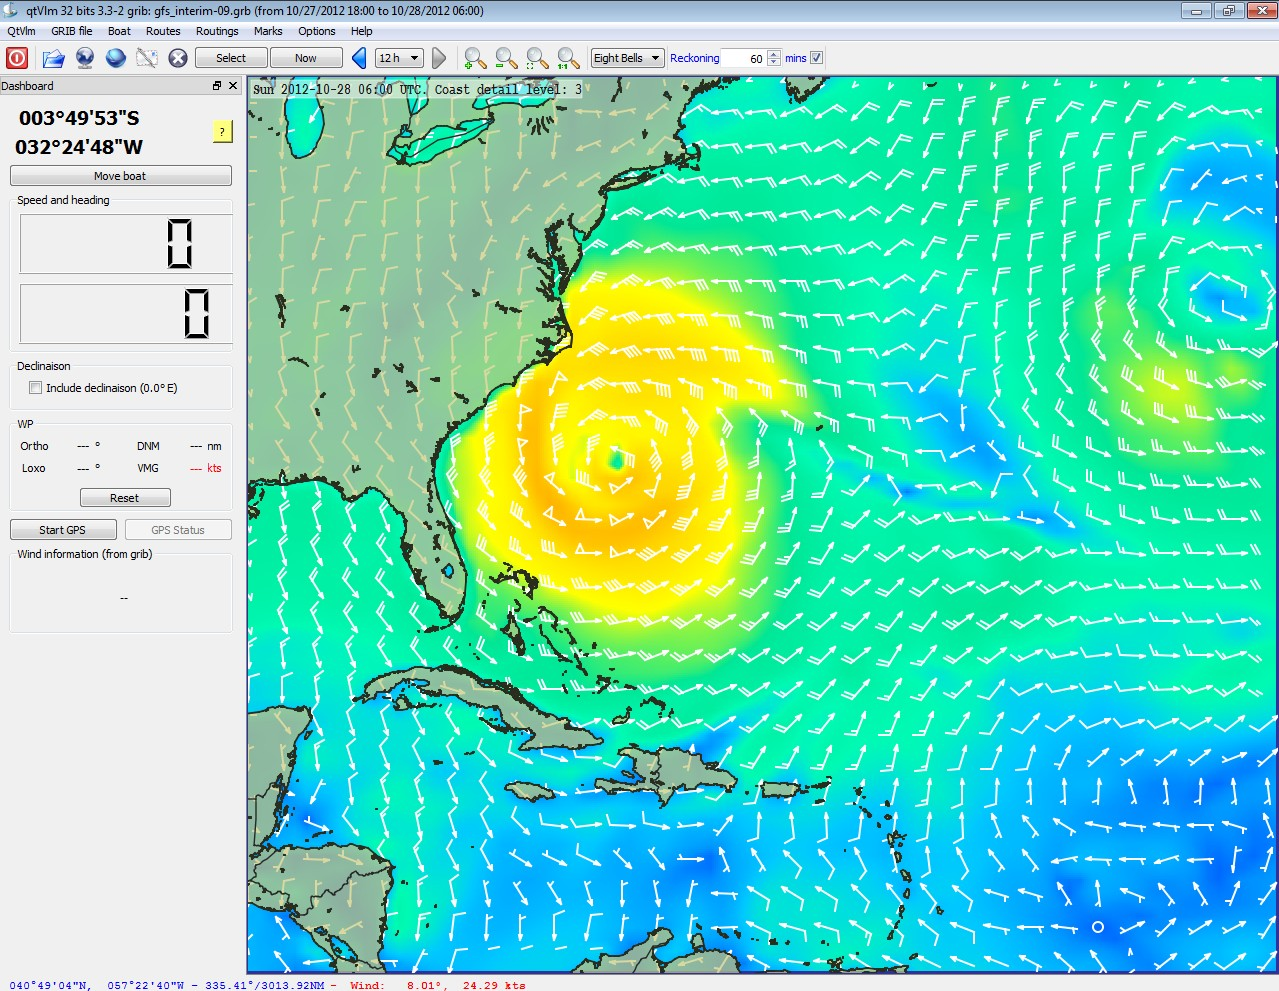 Click image for larger version  Name:Yachtmarine_119 Oct. 28 16.22.jpg Views:137 Size:369.9 KB ID:48911